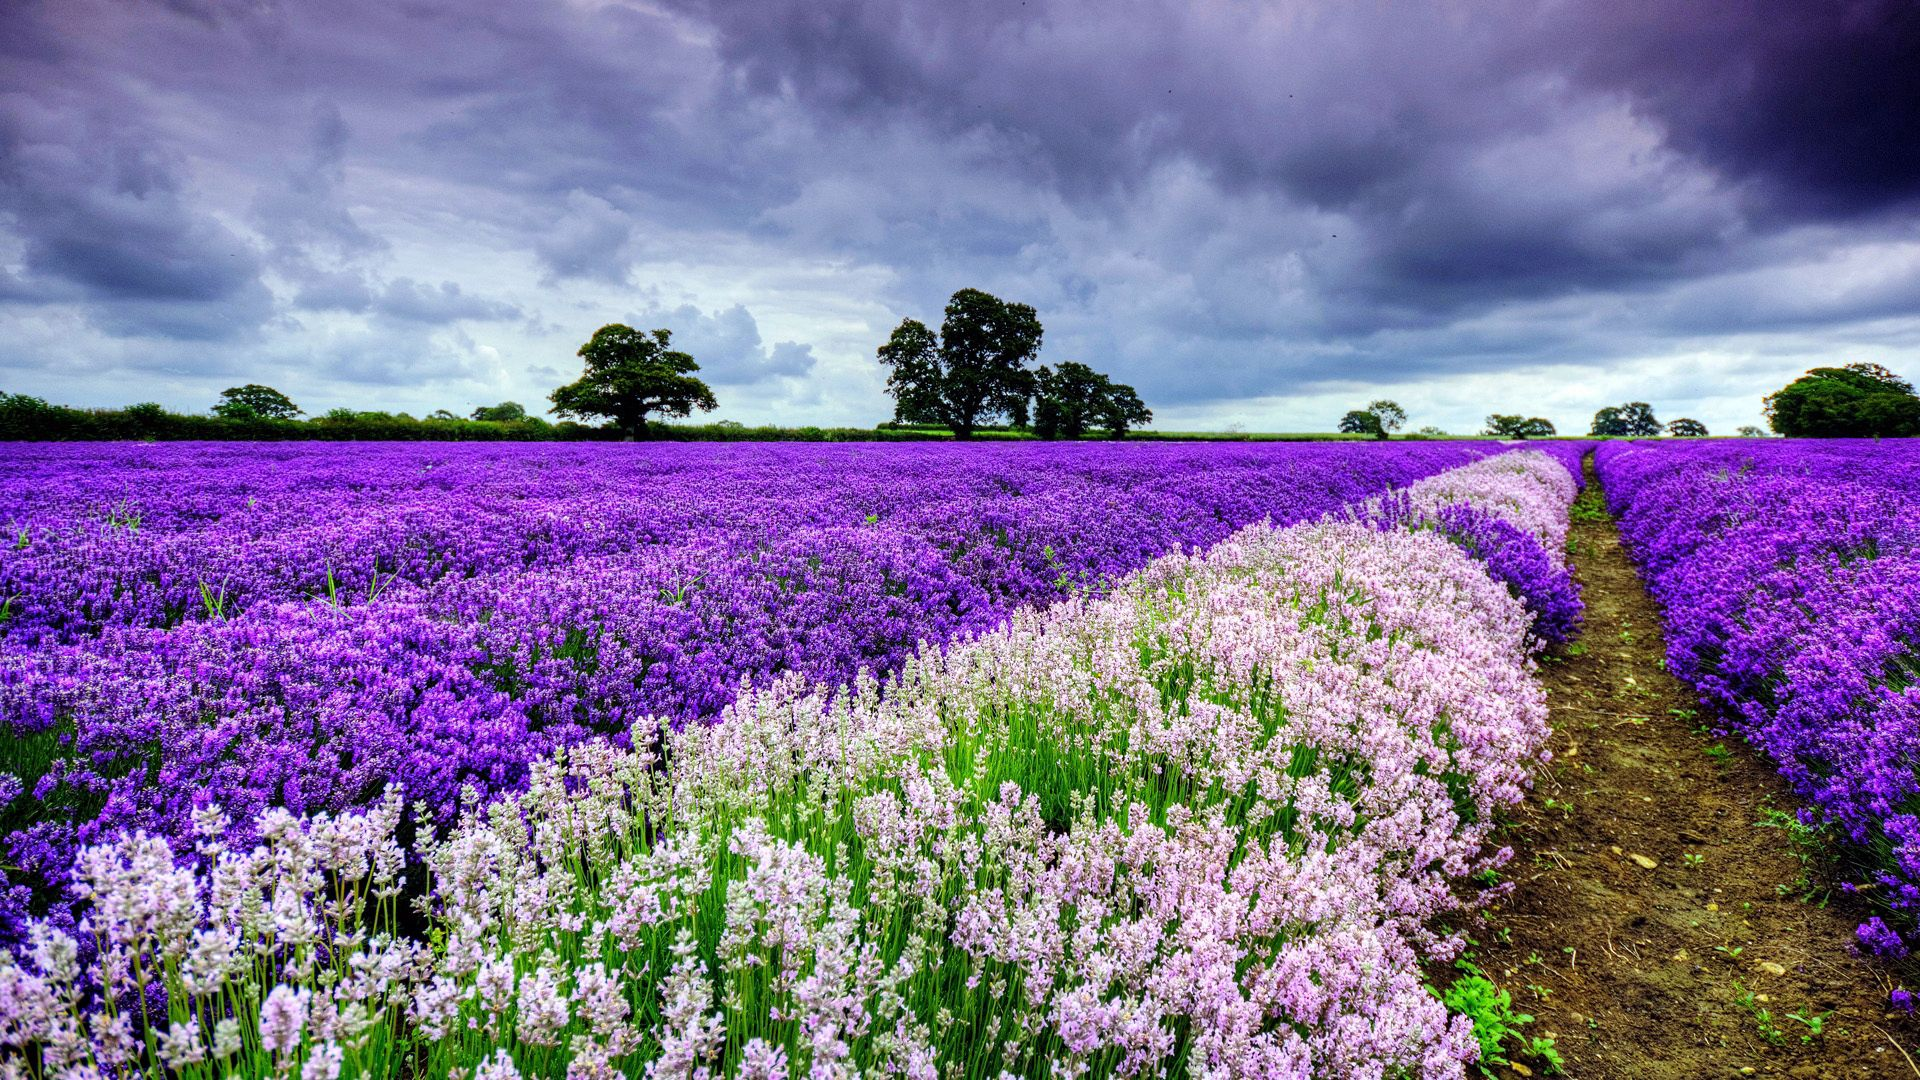 89225 Screensavers and Wallpapers Dahl for phone. Download Nature, Flowers, Summer, Field, Dahl, Distance pictures for free